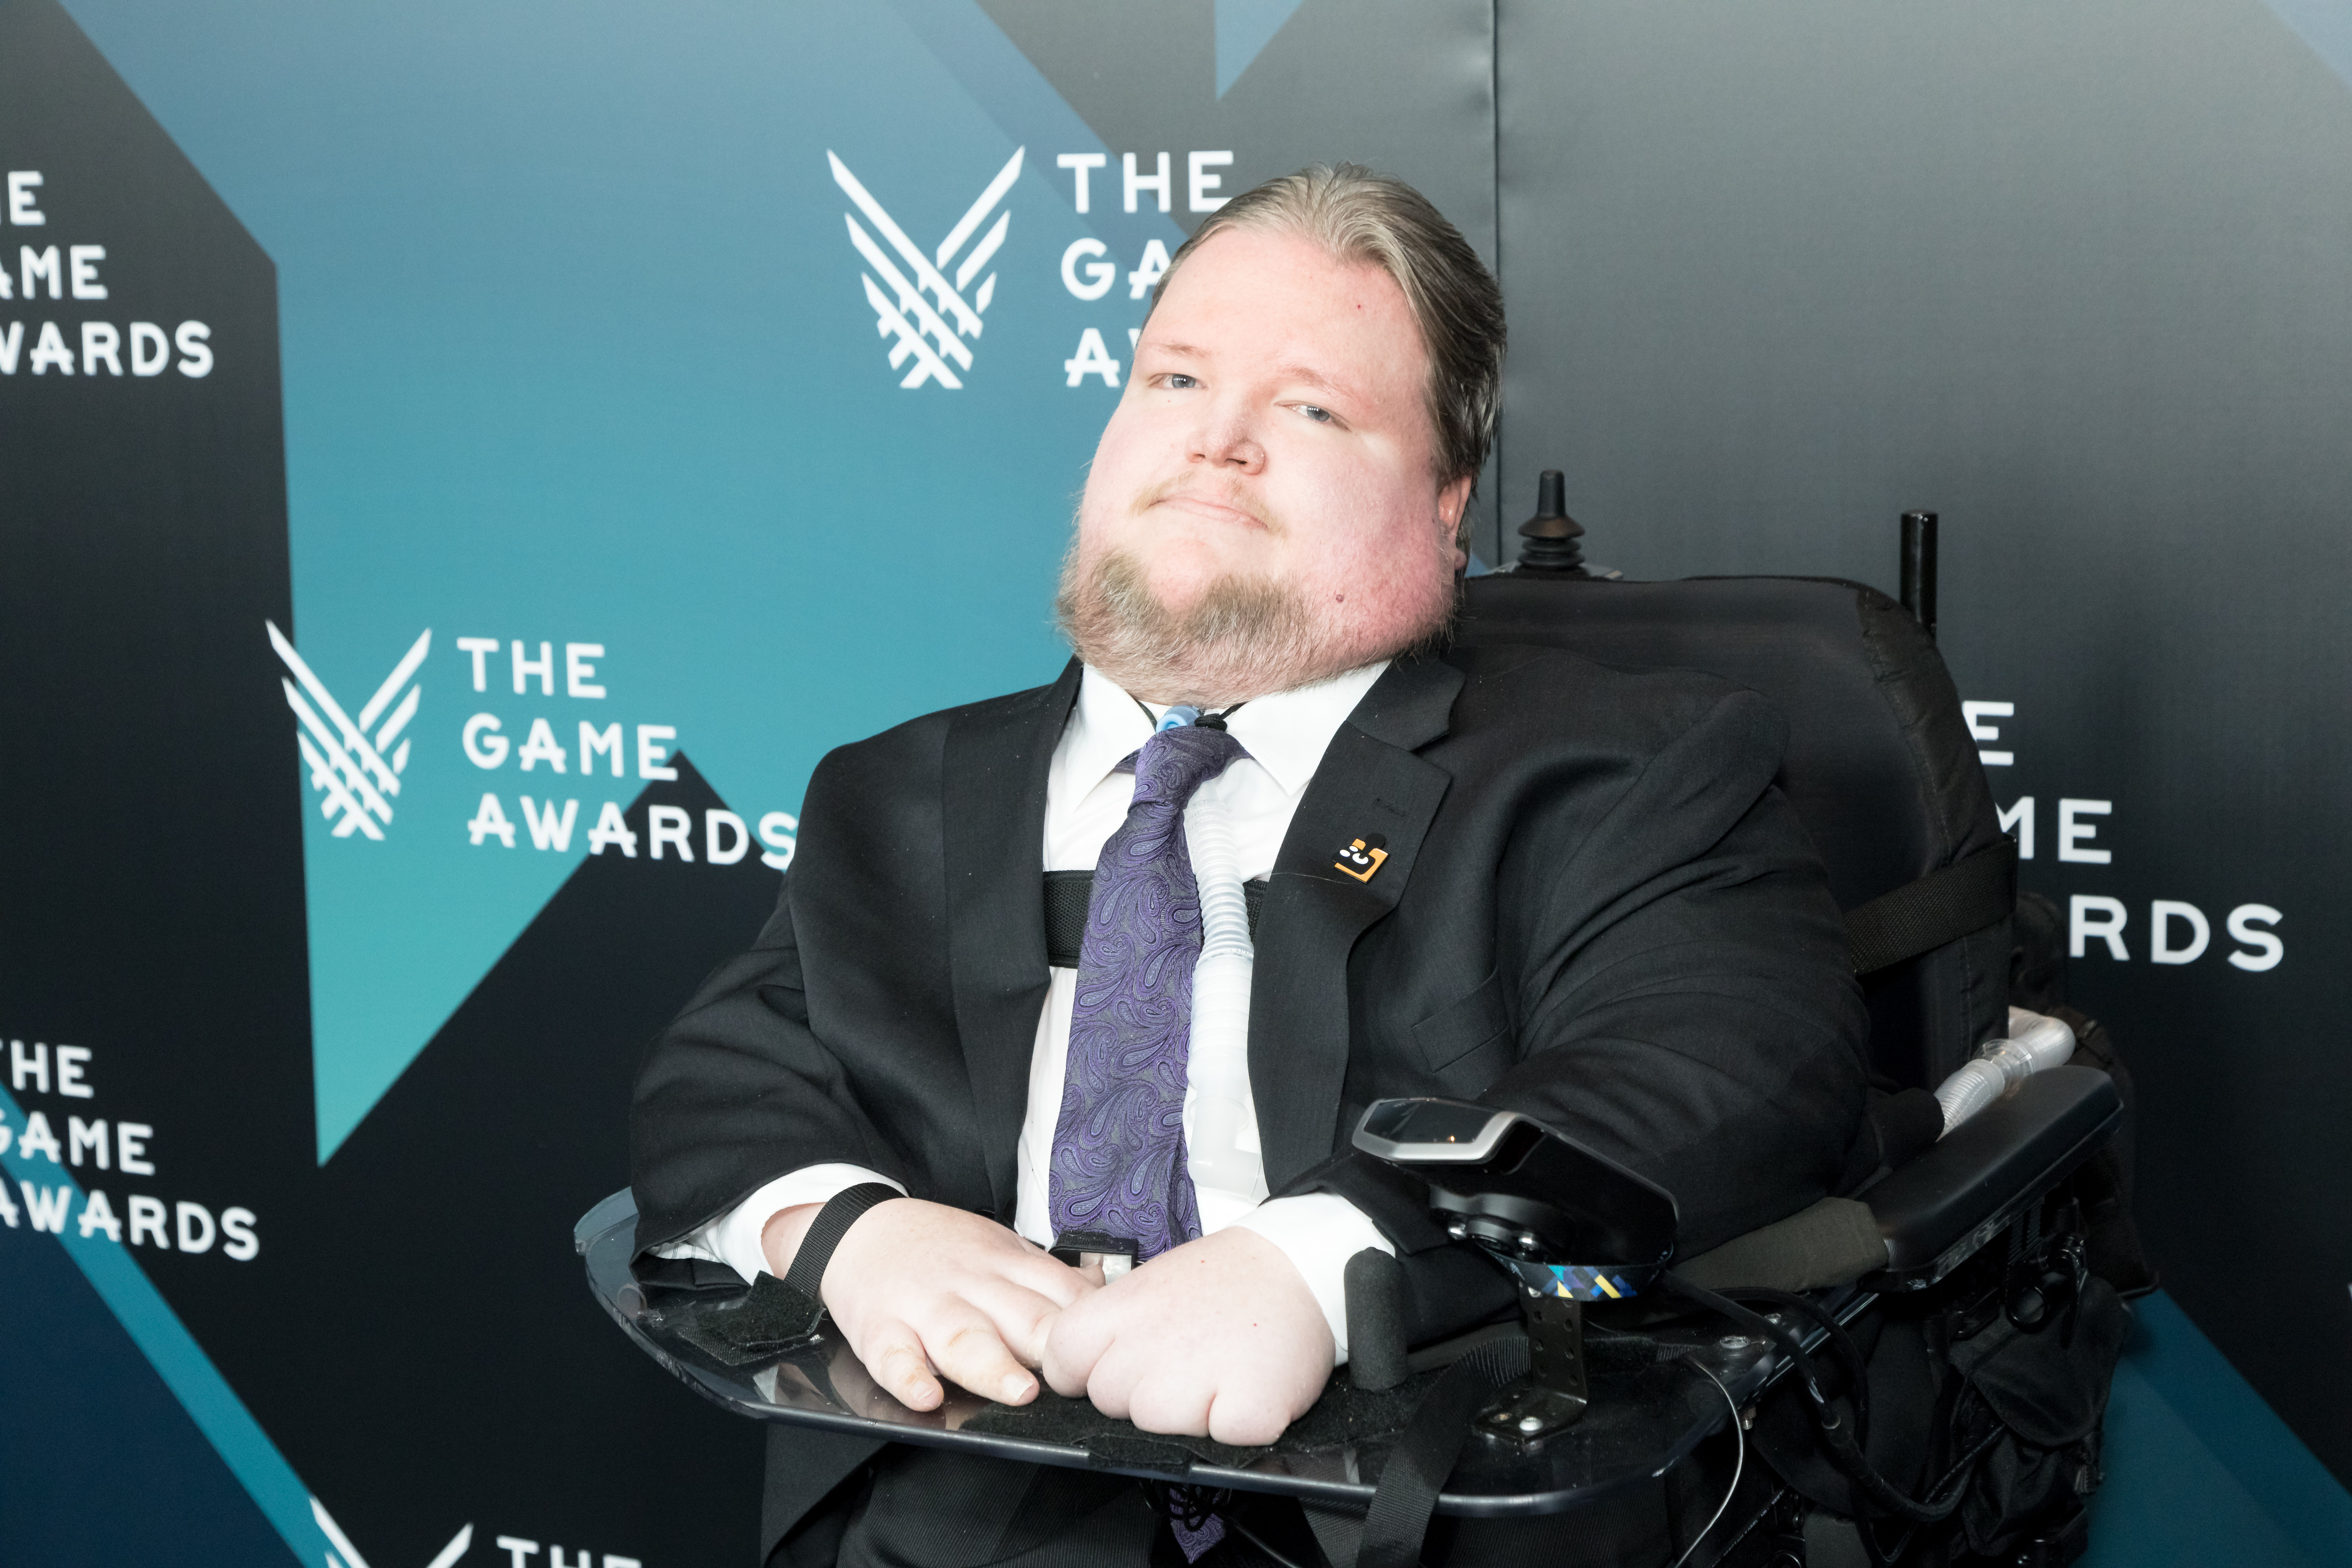 """Steven Spohn wearing a suit, sitting in his wheelchair in front of a backdrop with """"The Game Awards"""" on it."""